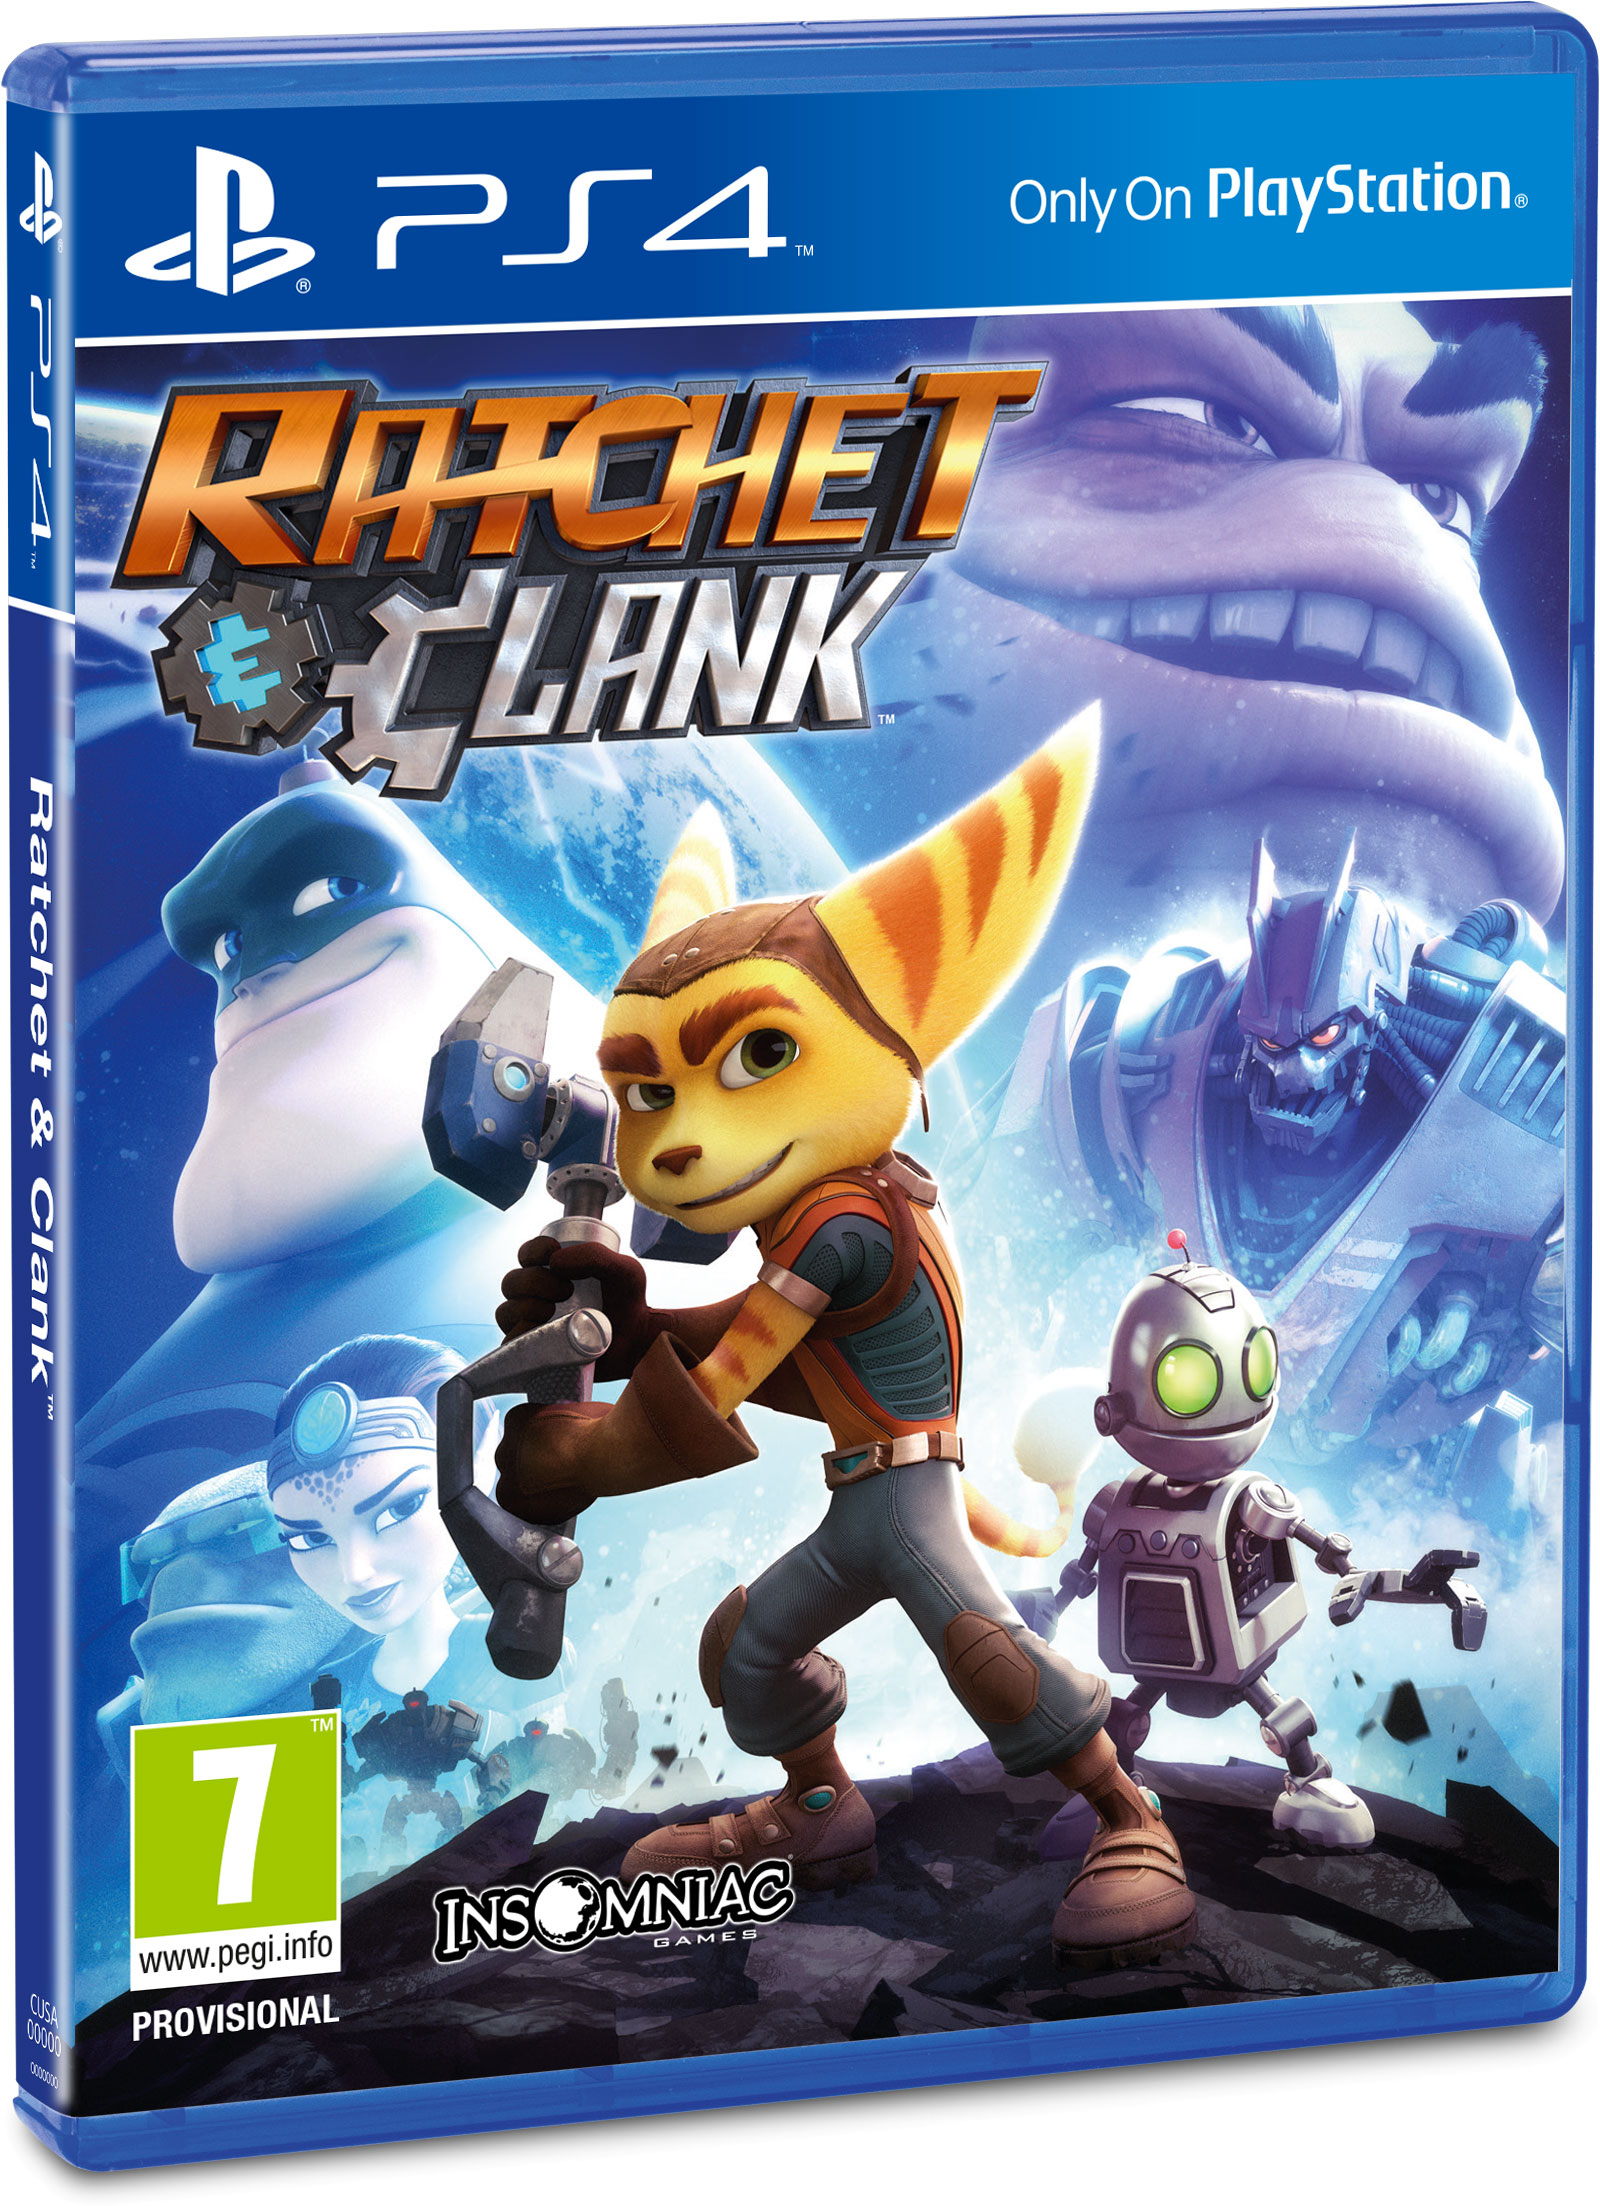 ratchet clank sur playstation 4 au printemps 2016 news jeux vid o digitalcin. Black Bedroom Furniture Sets. Home Design Ideas